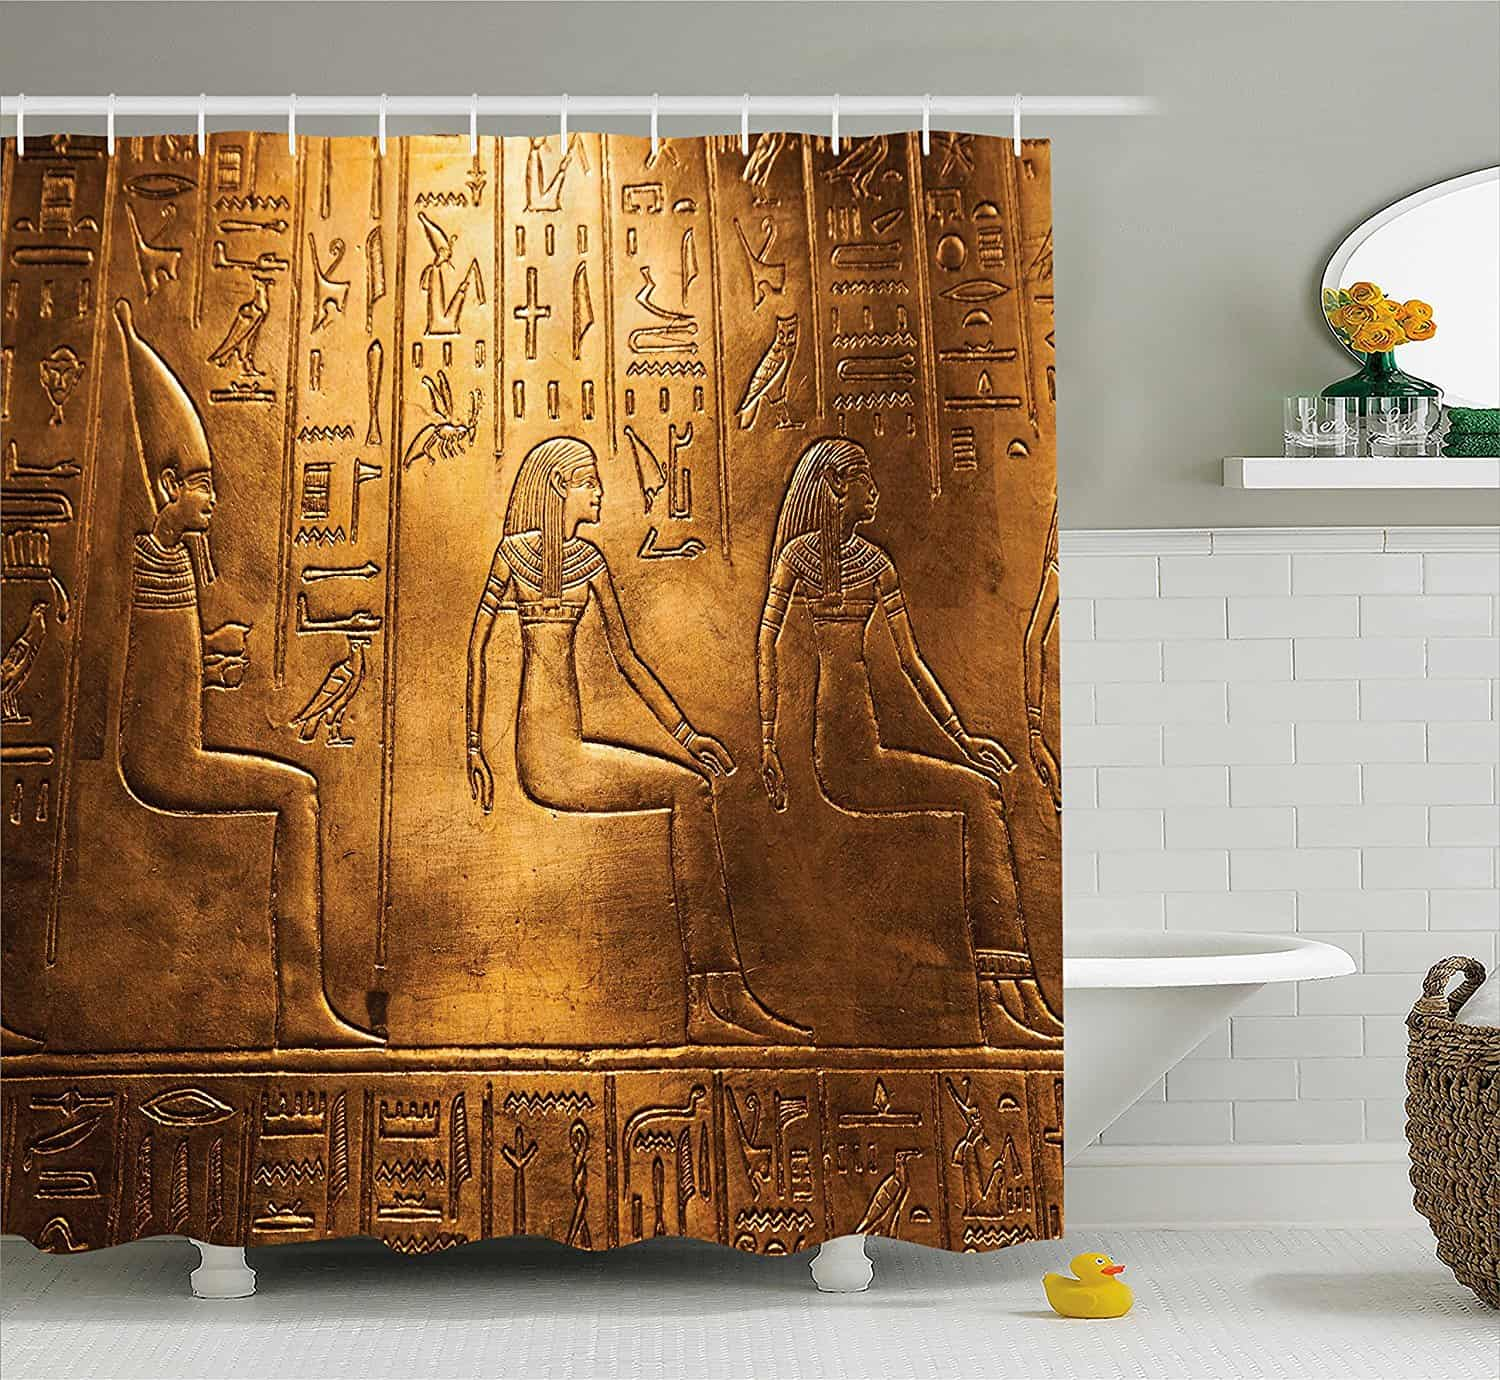 Ambesonne Egyptian Bathroom Shower Curtain